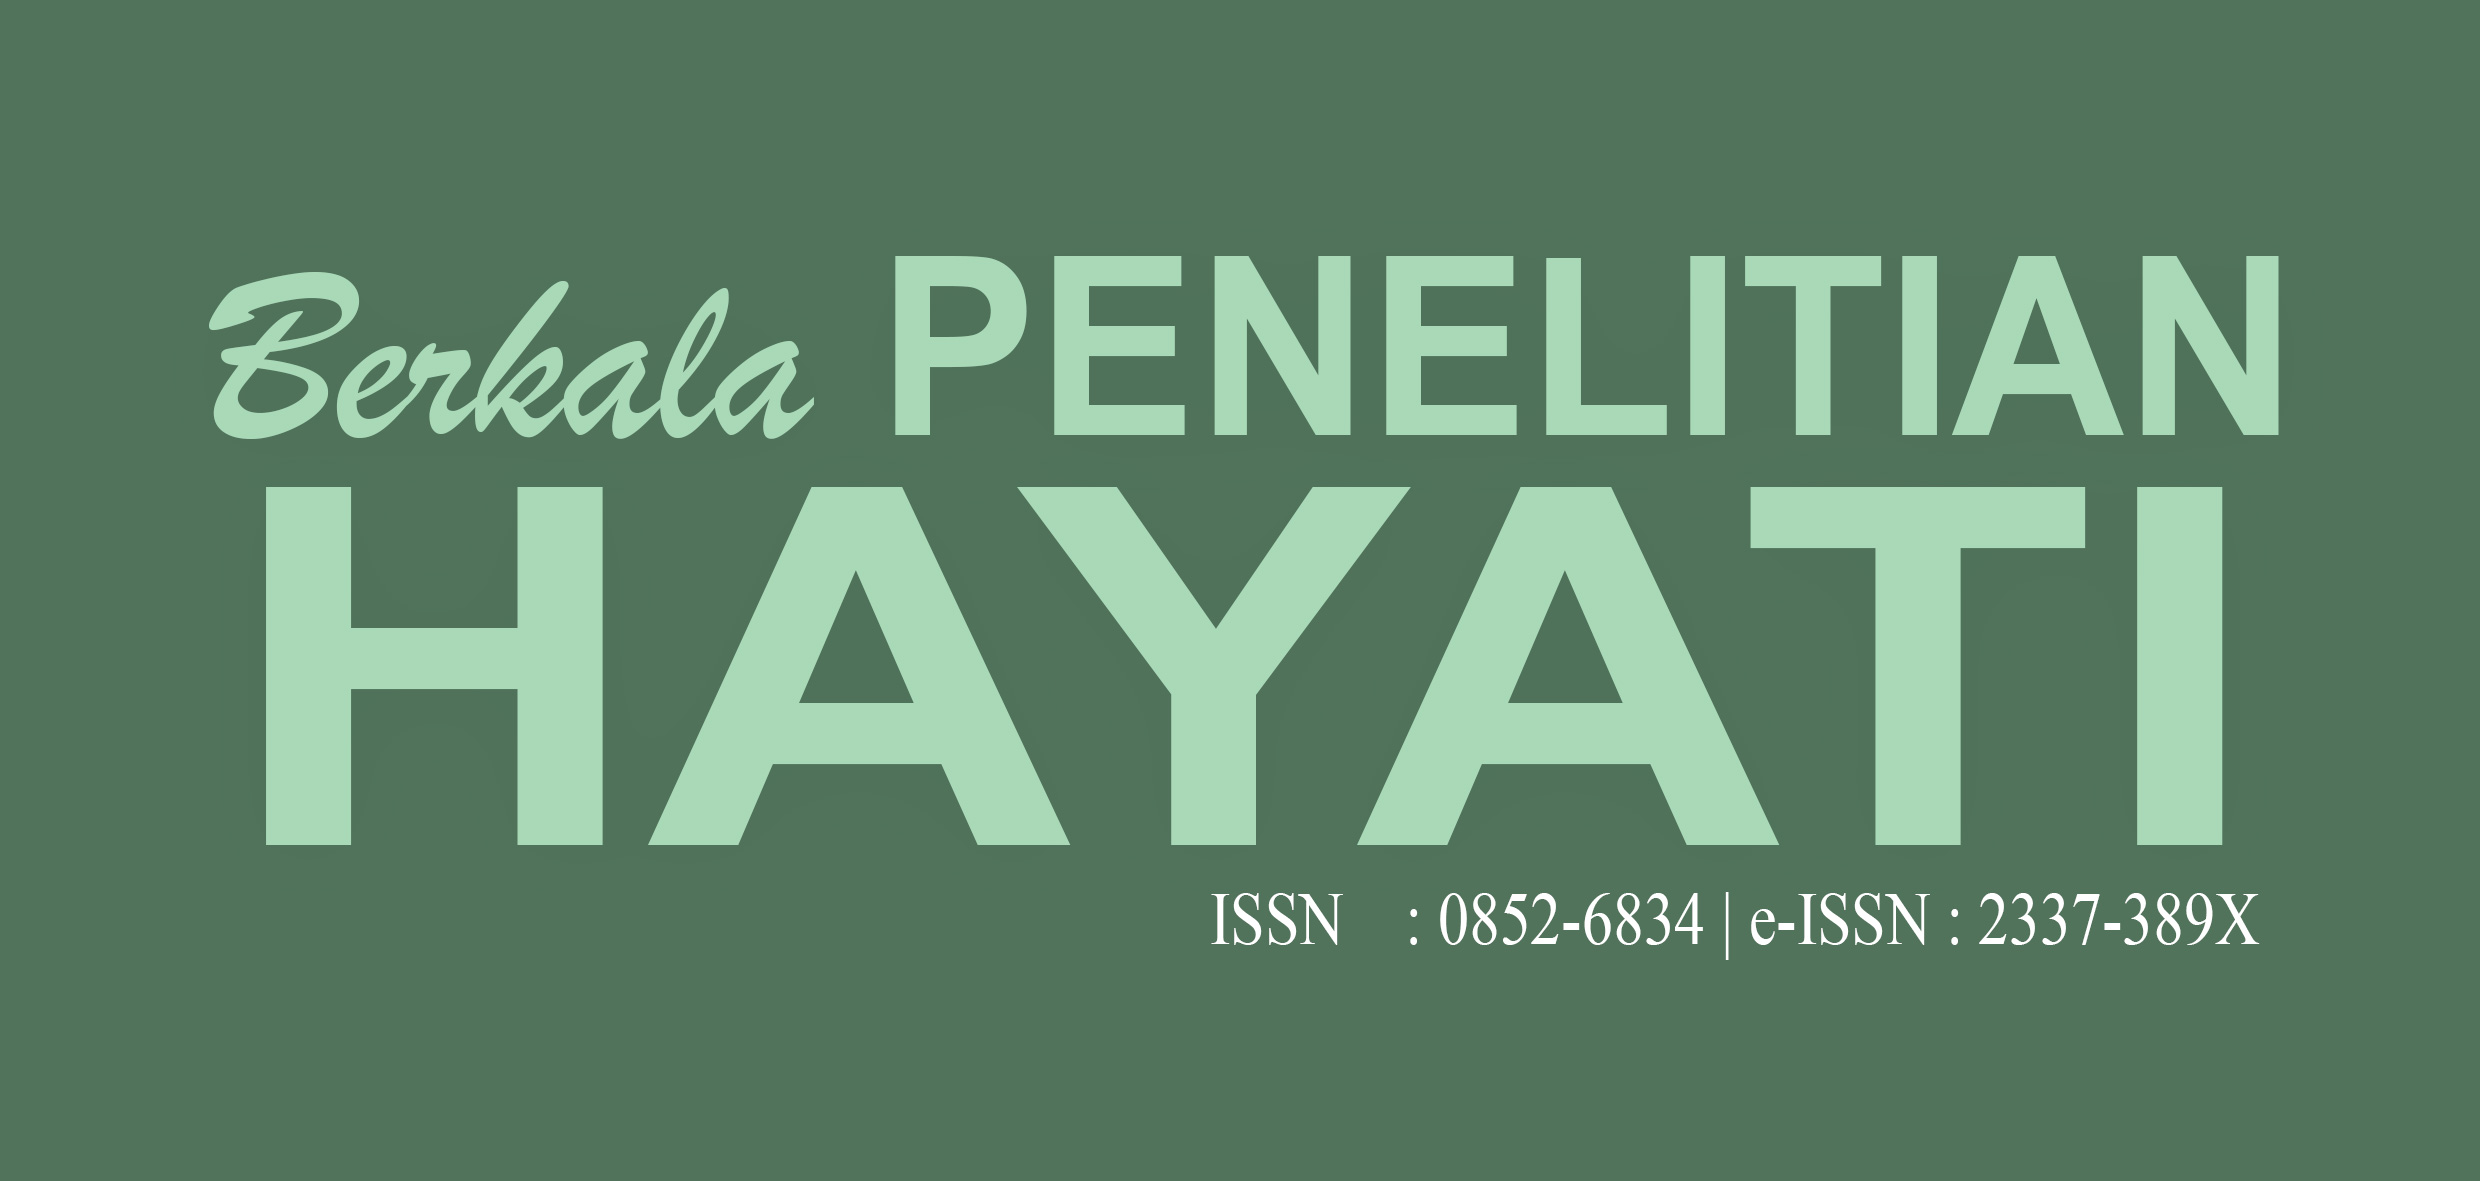 Berkala Penelitian Hayati Journal of Biological Researches